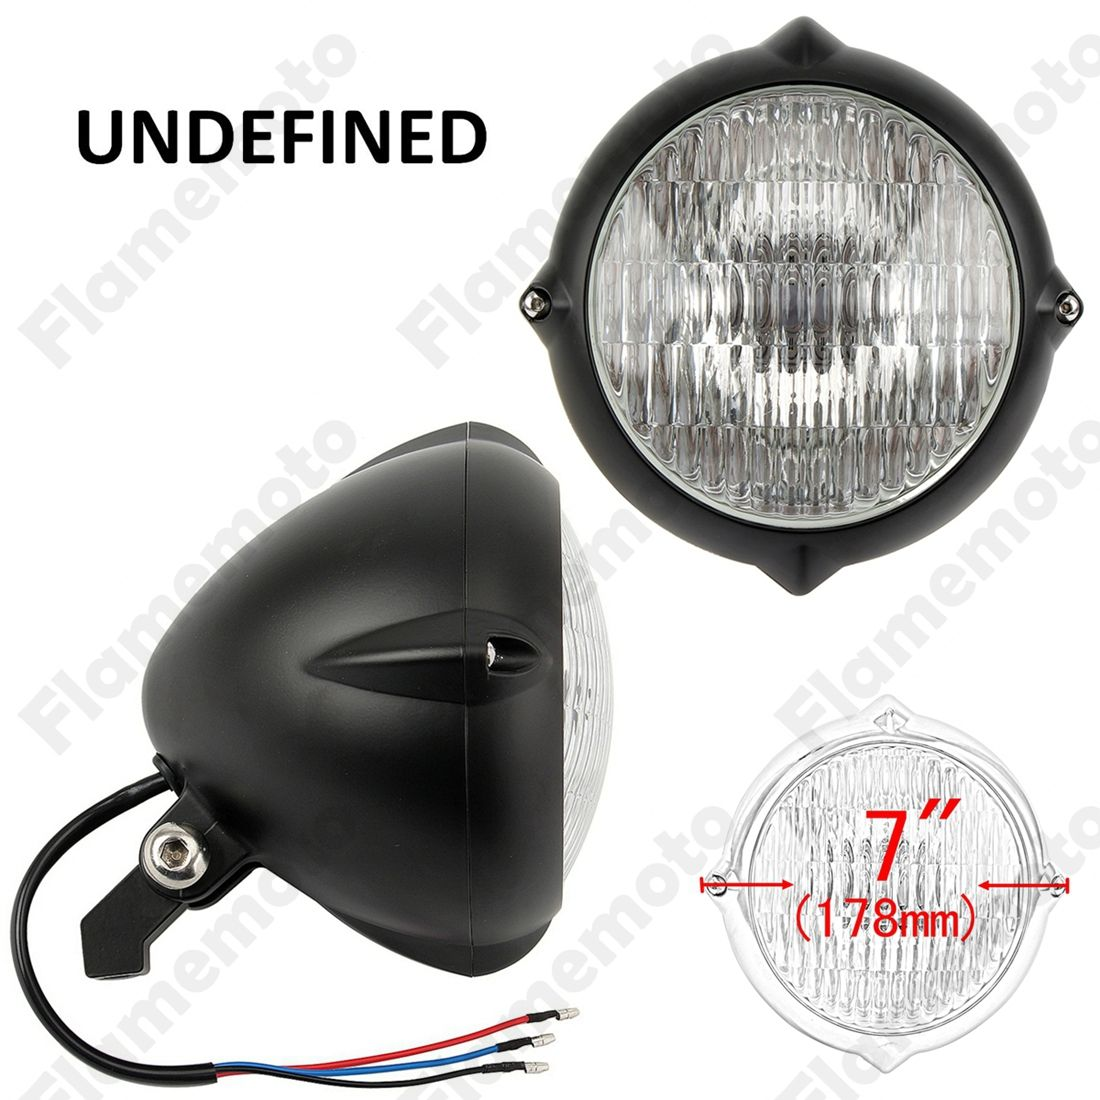 Check discount top 7 12v motorcycle parts black vintage bullet check discount top 7 12v motorcycle parts black vintage bullet headlight lamp for cafe racer old aloadofball Image collections